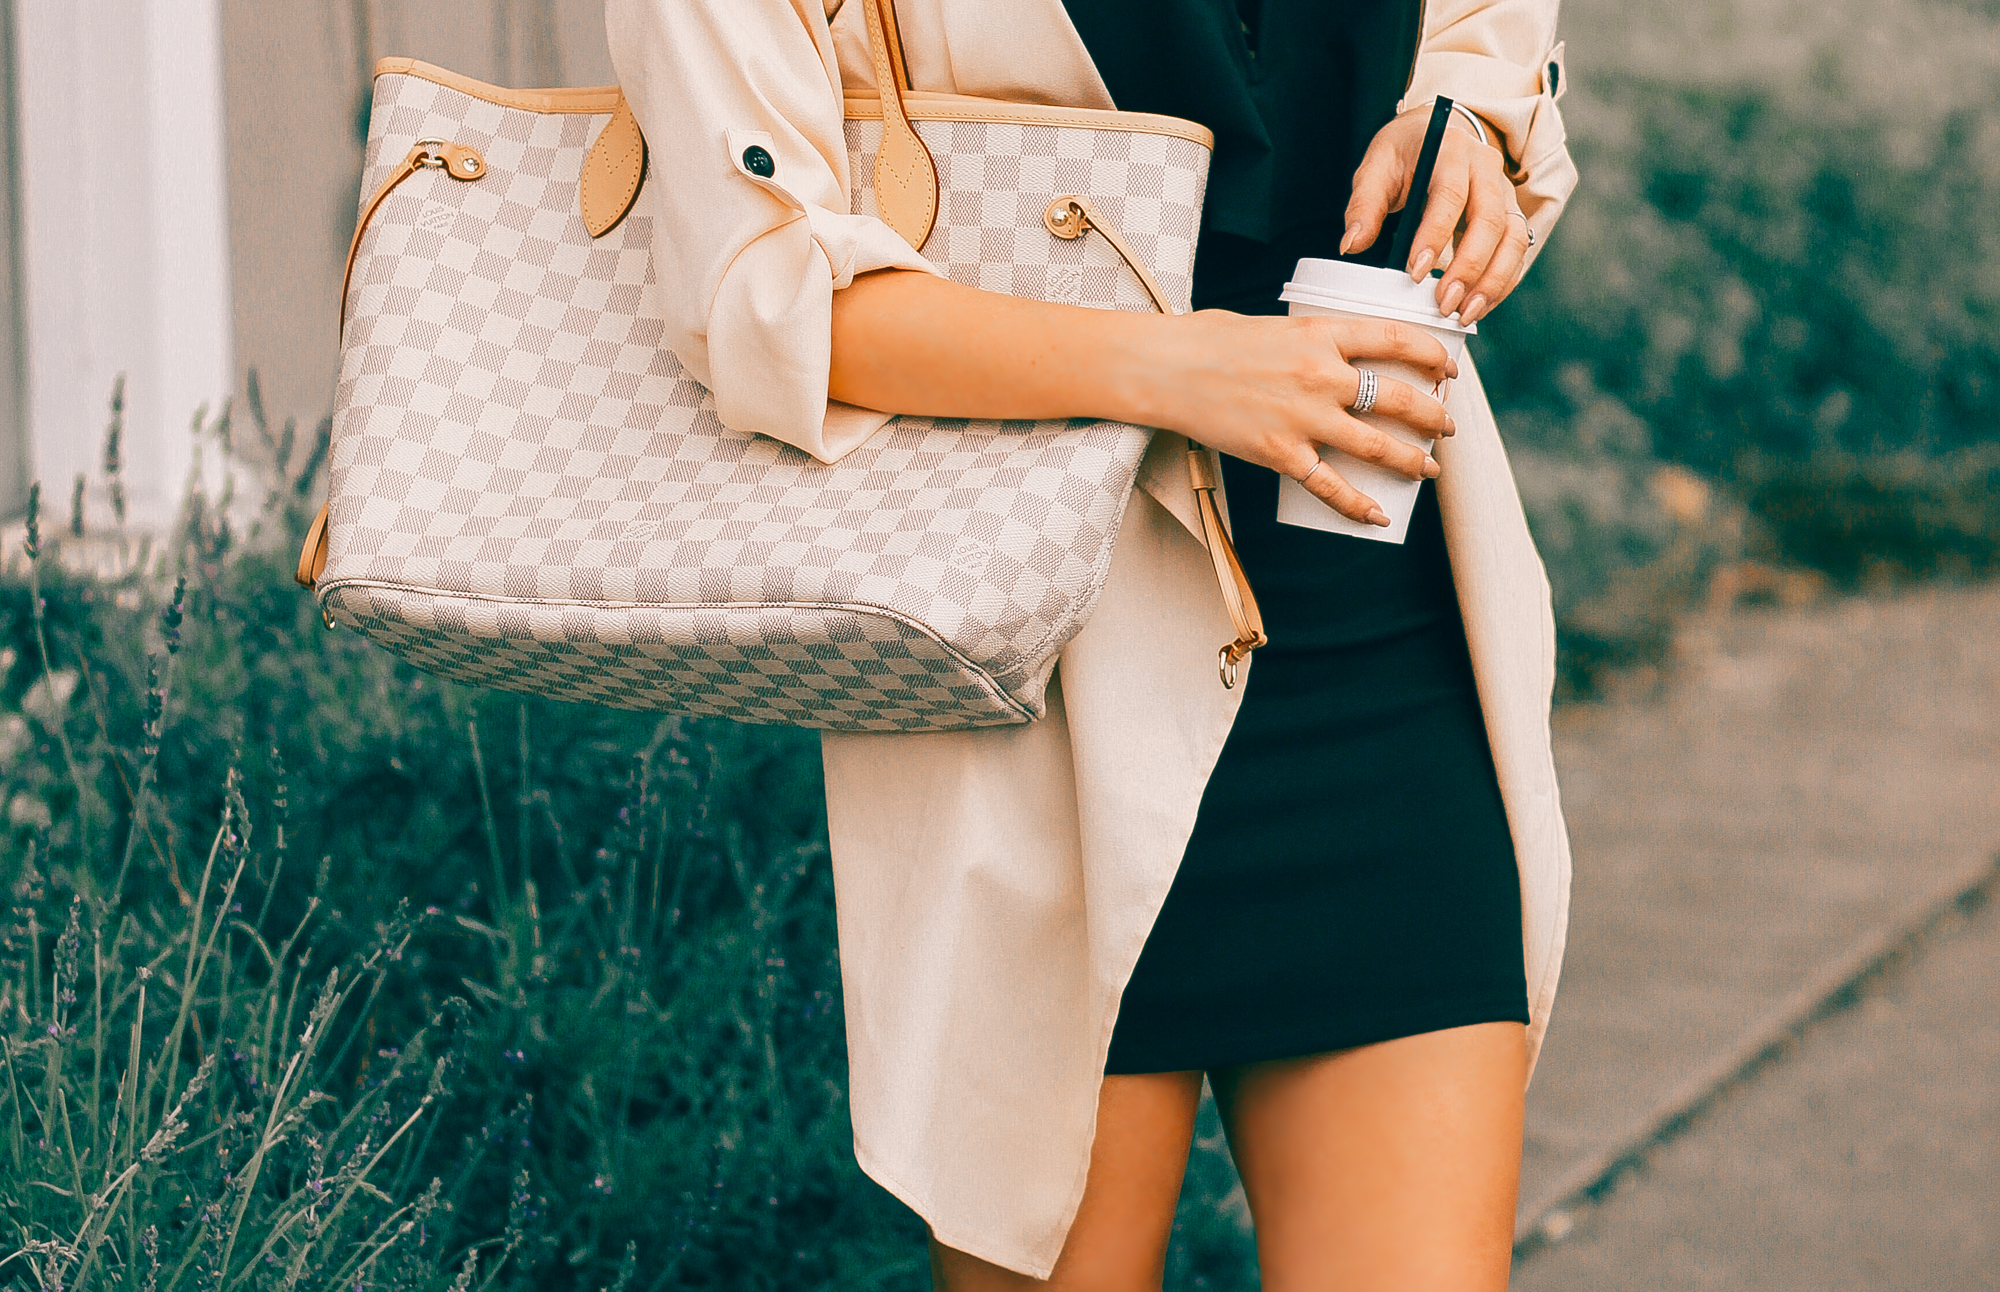 Blondie in the City | Neutral Tones | Louis Vuitton Neverfull